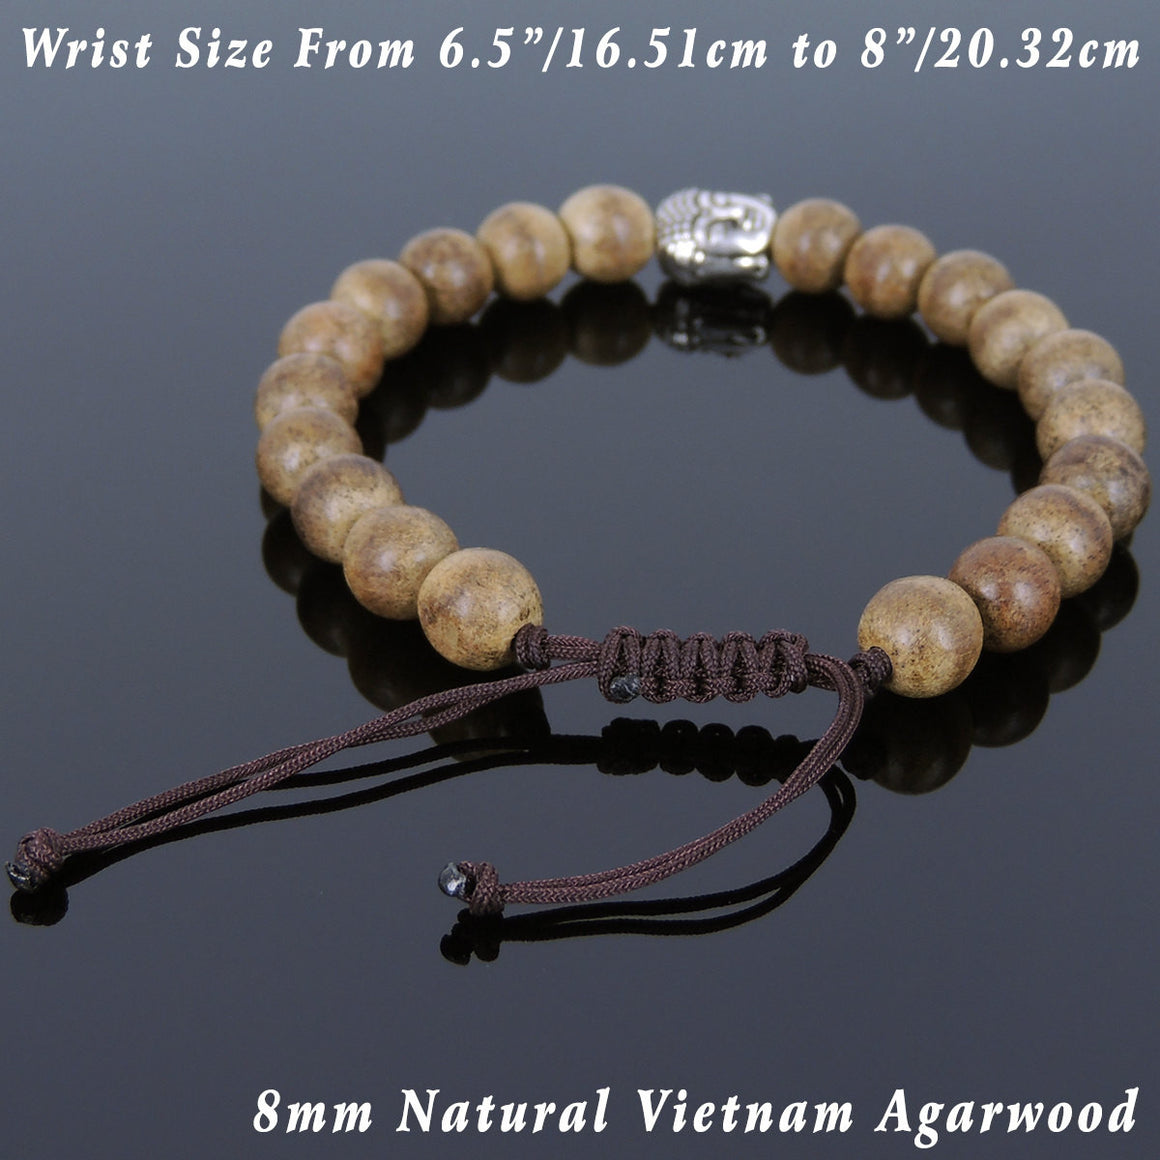 Agarwood Mala Adjustable Bracelet with S925 Sterling Silver Guanyin Buddha Bead - Handmade by Gem & Silver BR868